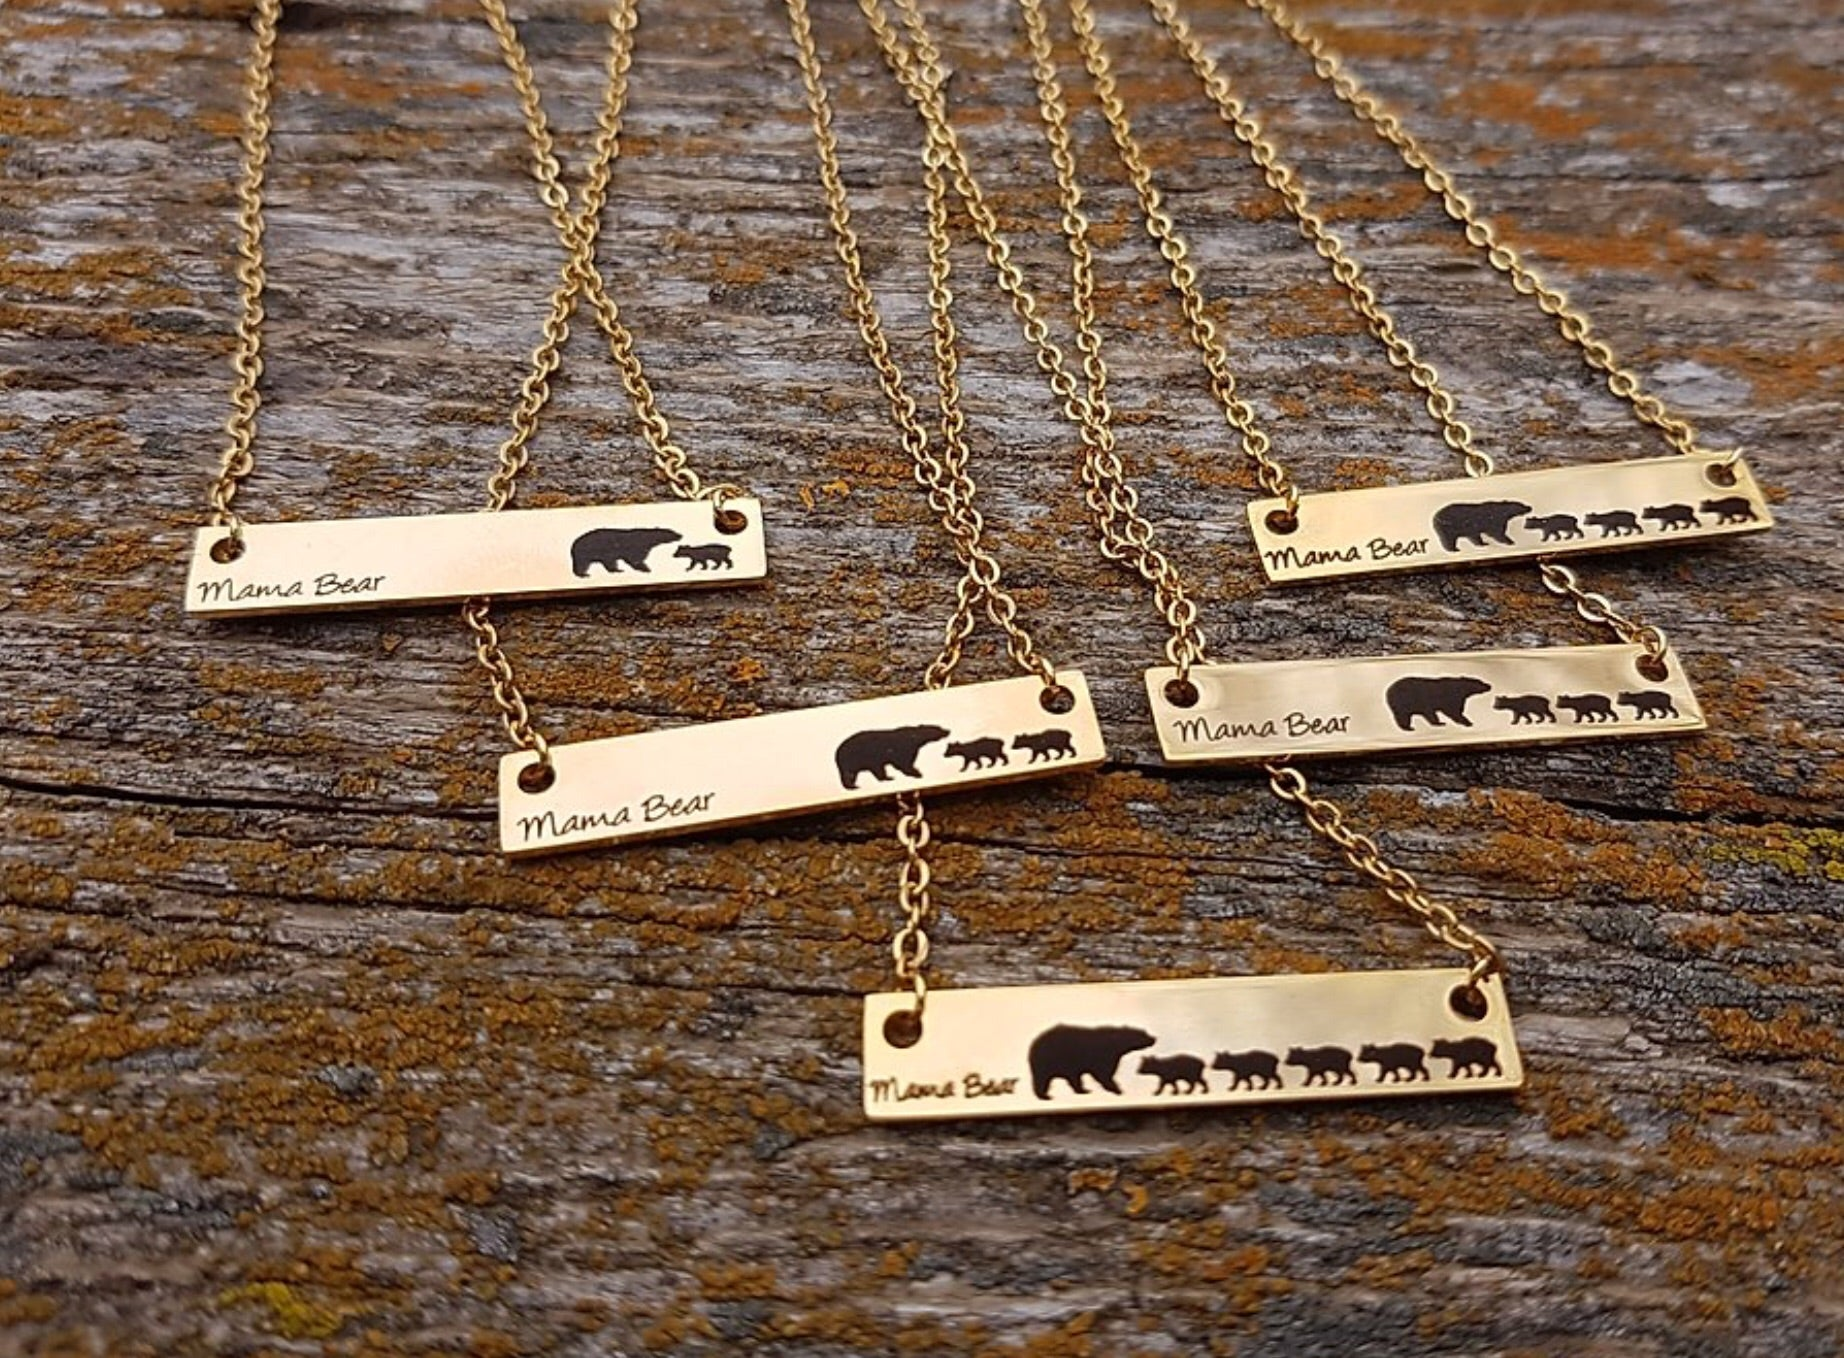 Mama Bear Chains - Silver & Gold Selections